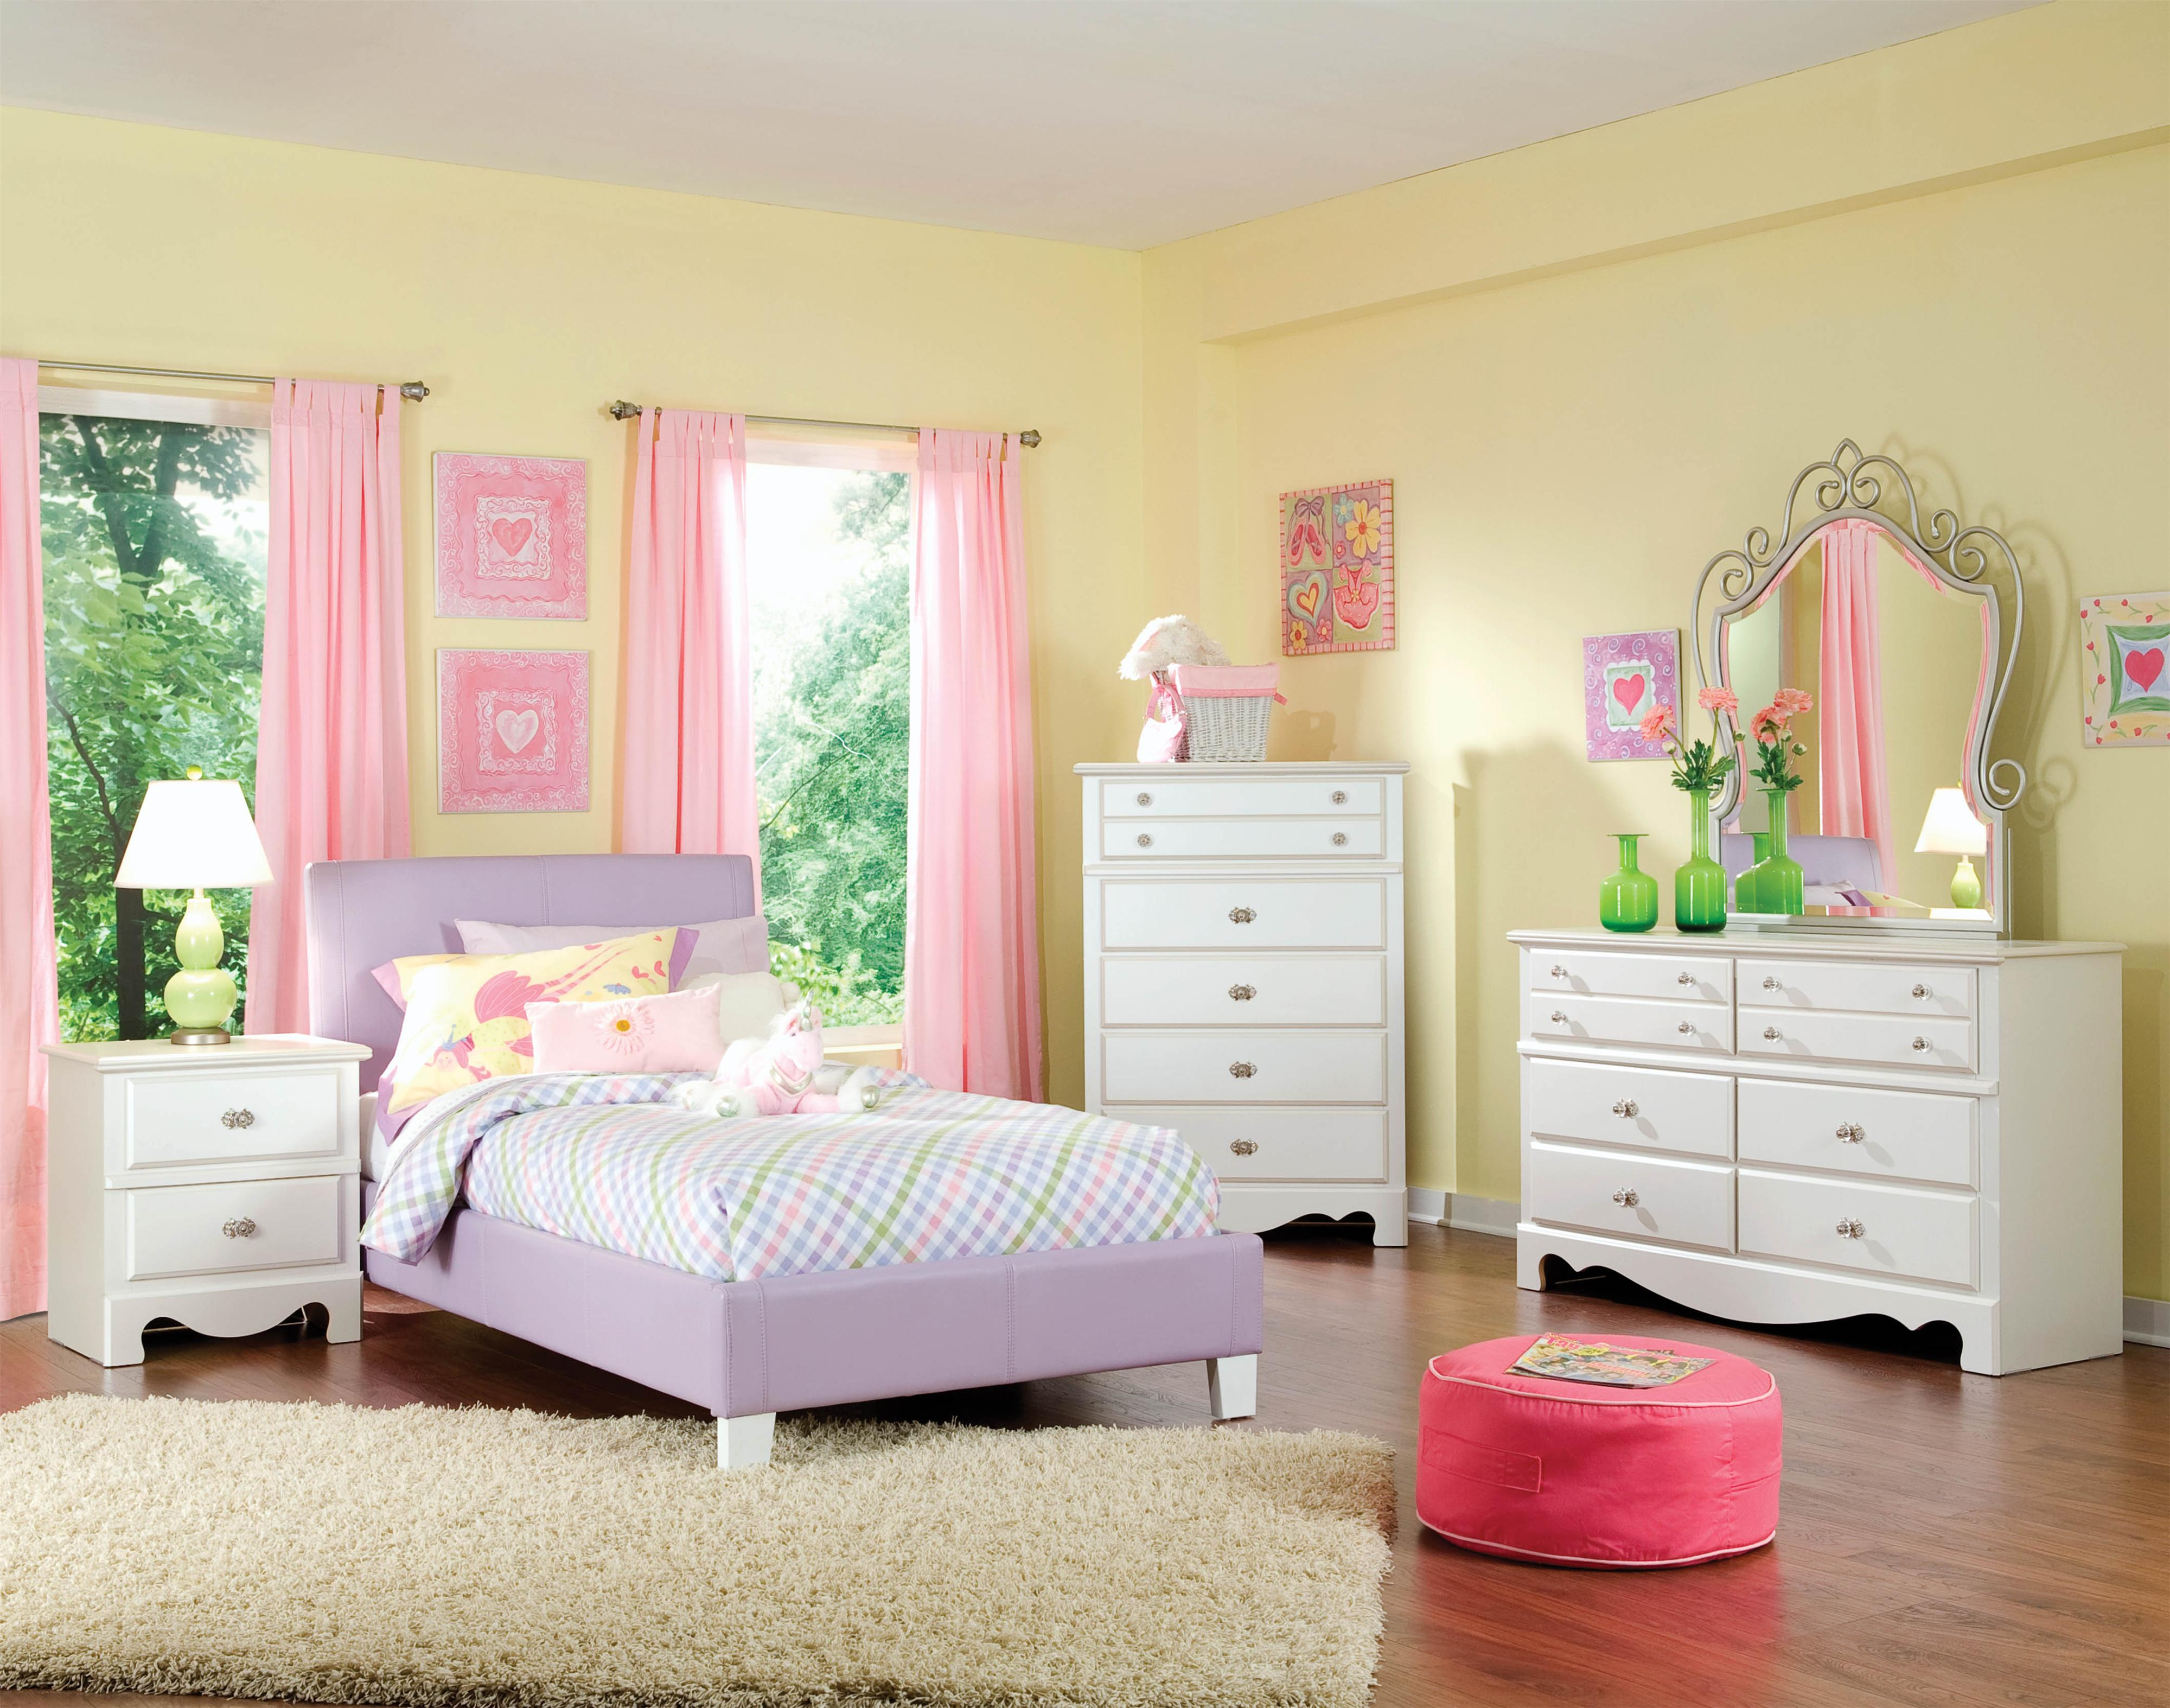 Standard Furniture Fantasia Full Bedroom Group - Item Number: 60750 F Bedroom Group 2